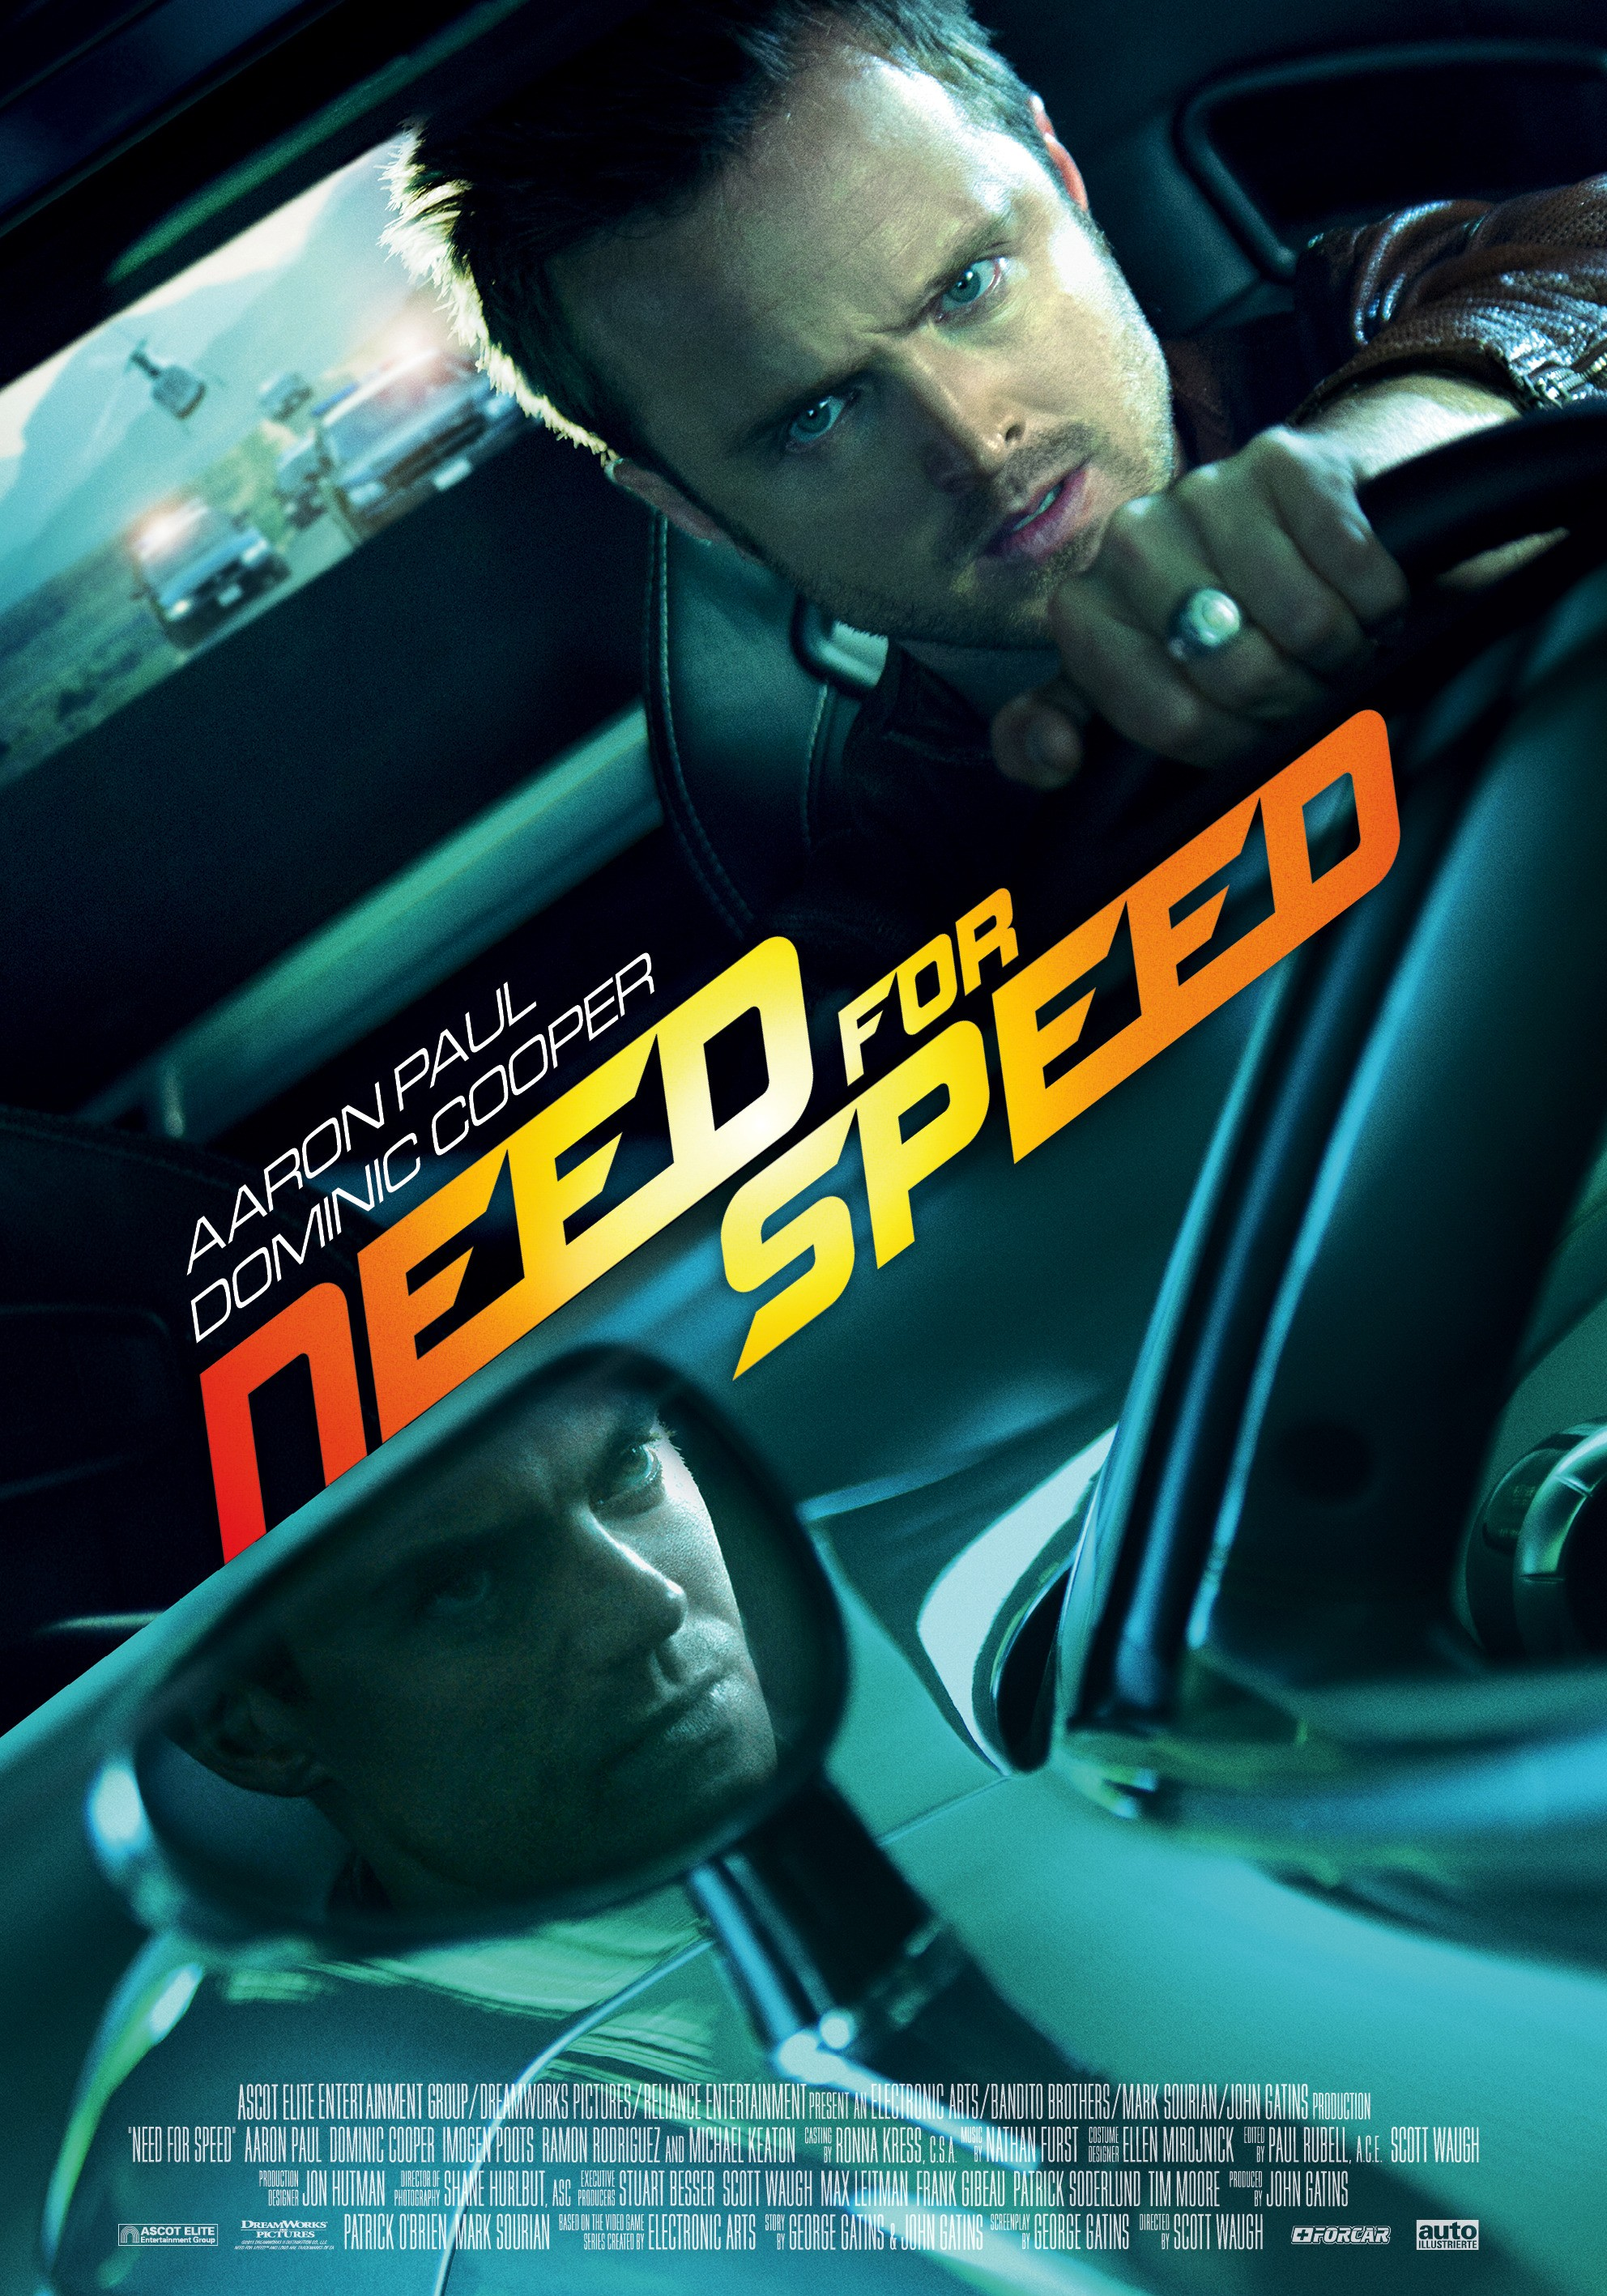 Need-for-speed-dvd-release-date